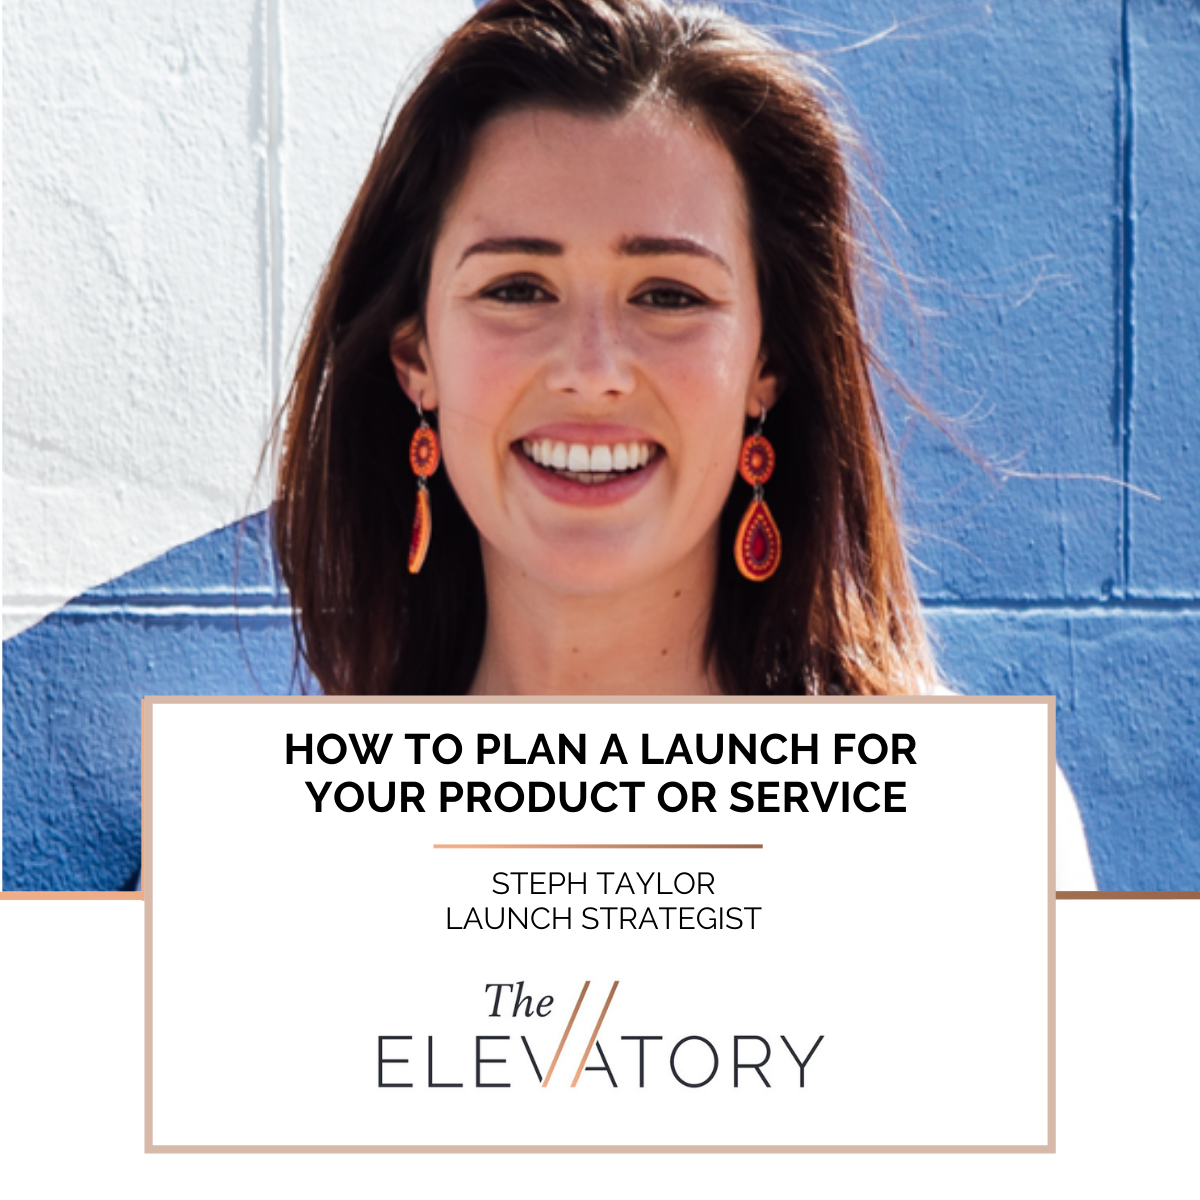 How to plan a launch for your product or service with Steph Taylor